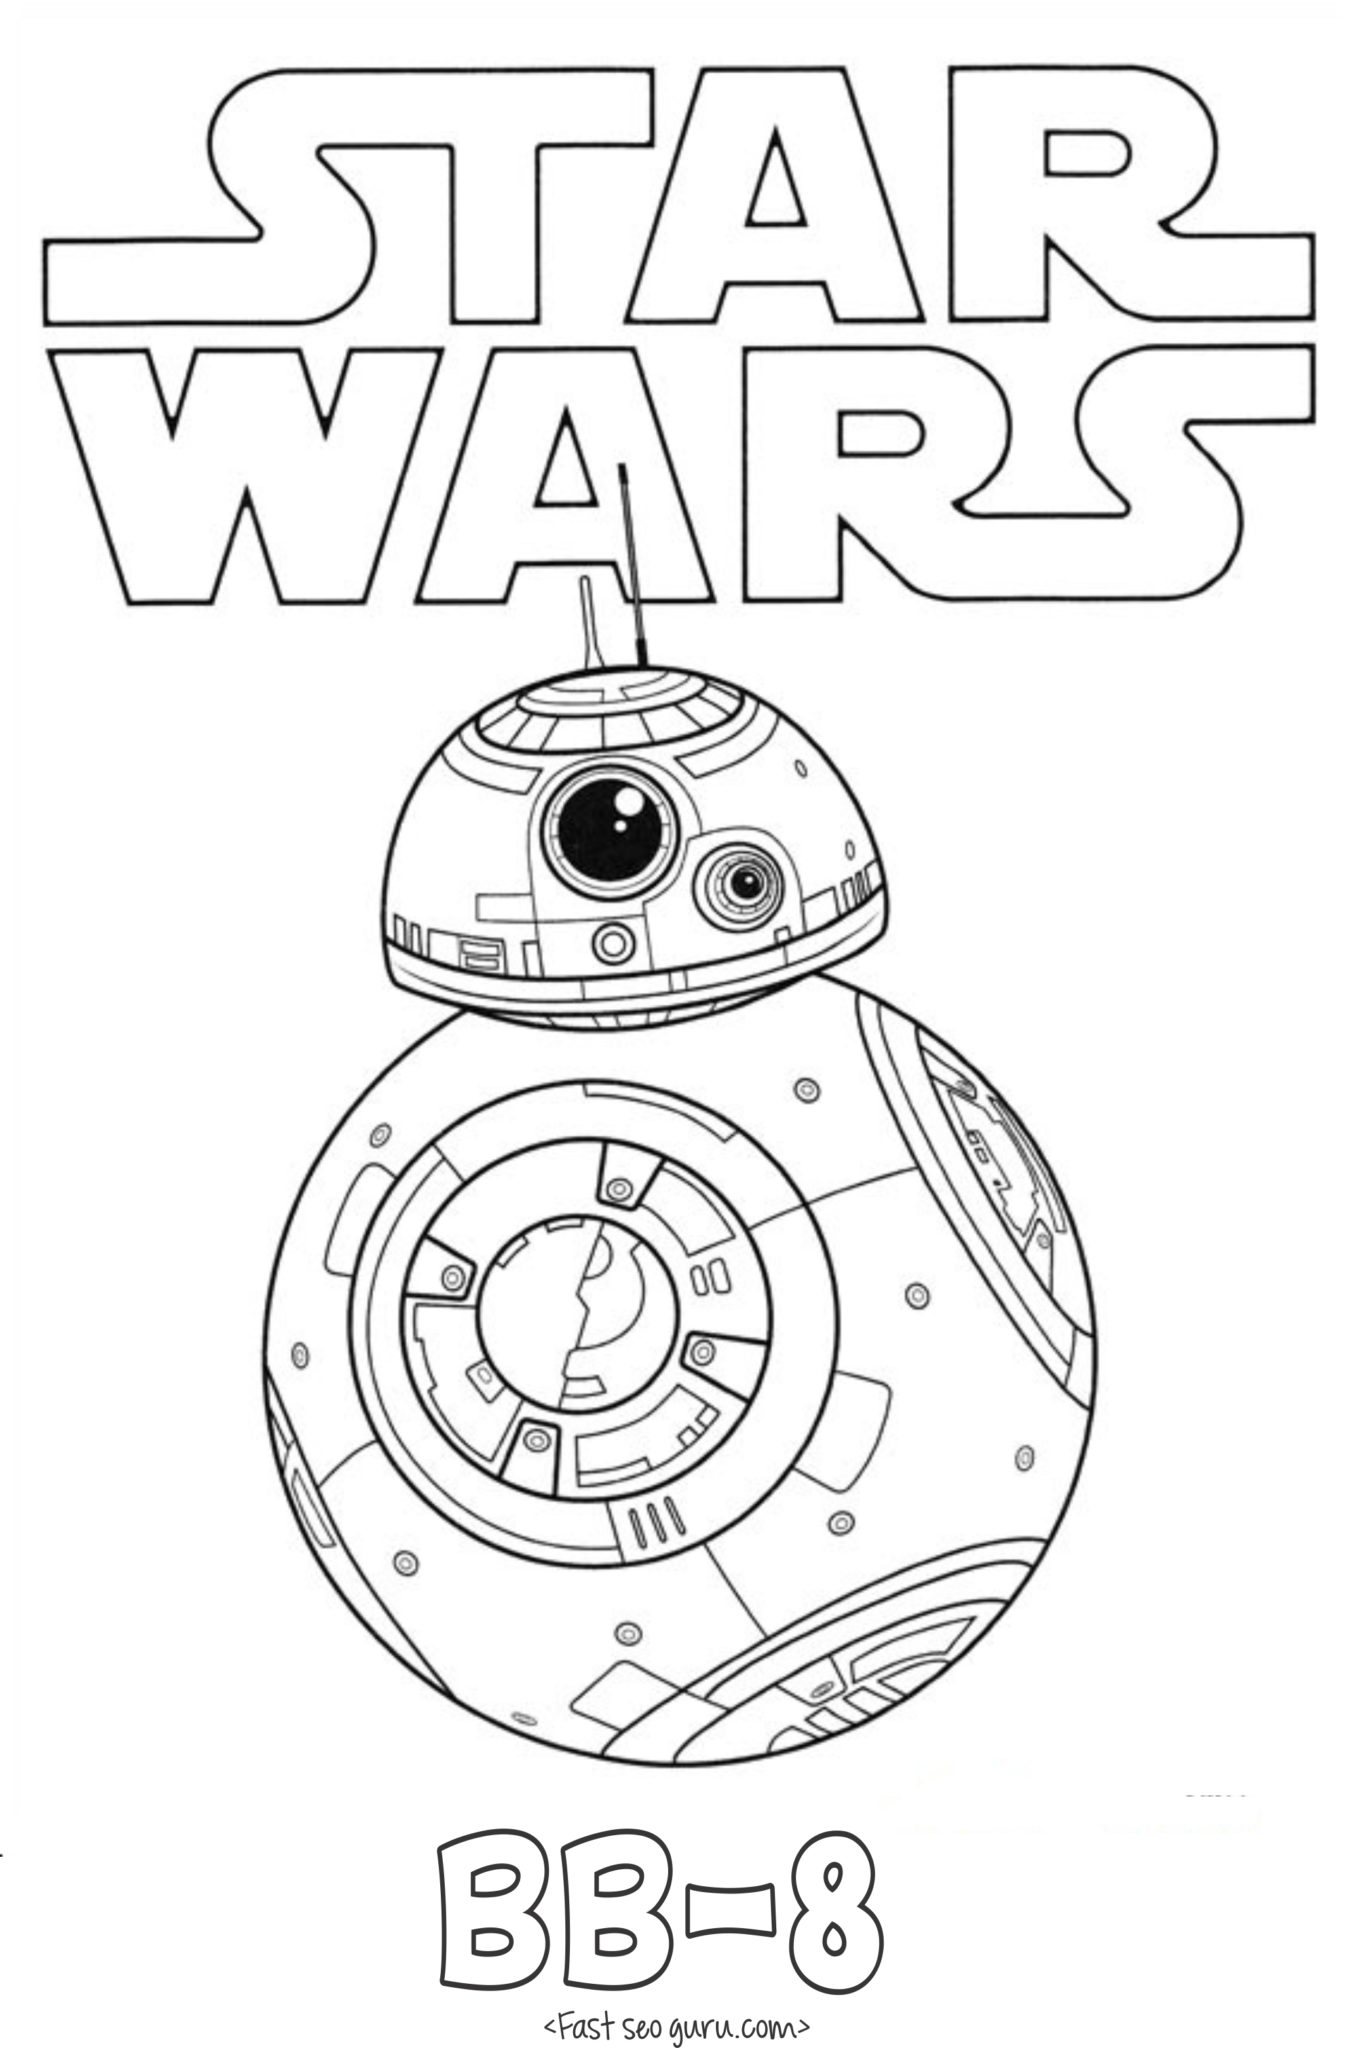 star wars the clone wars pictures to print 10 free star wars coloring pages chewbacca kylo ren clone the wars star pictures to wars print